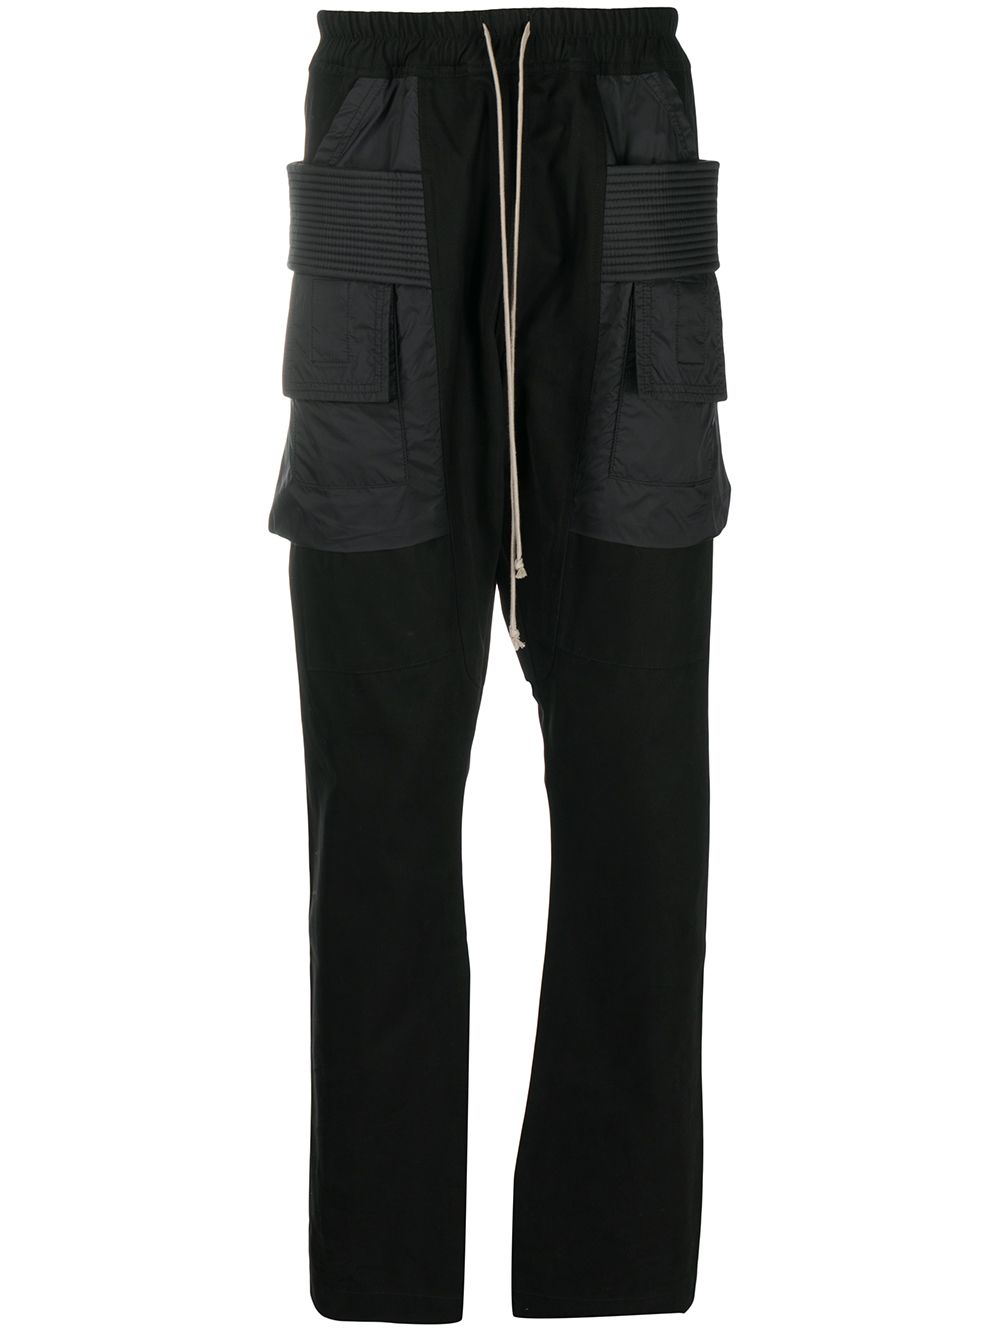 RICK OWENS DRKSHDW Cargo Drawstring Trousers Black - Maison De Fashion